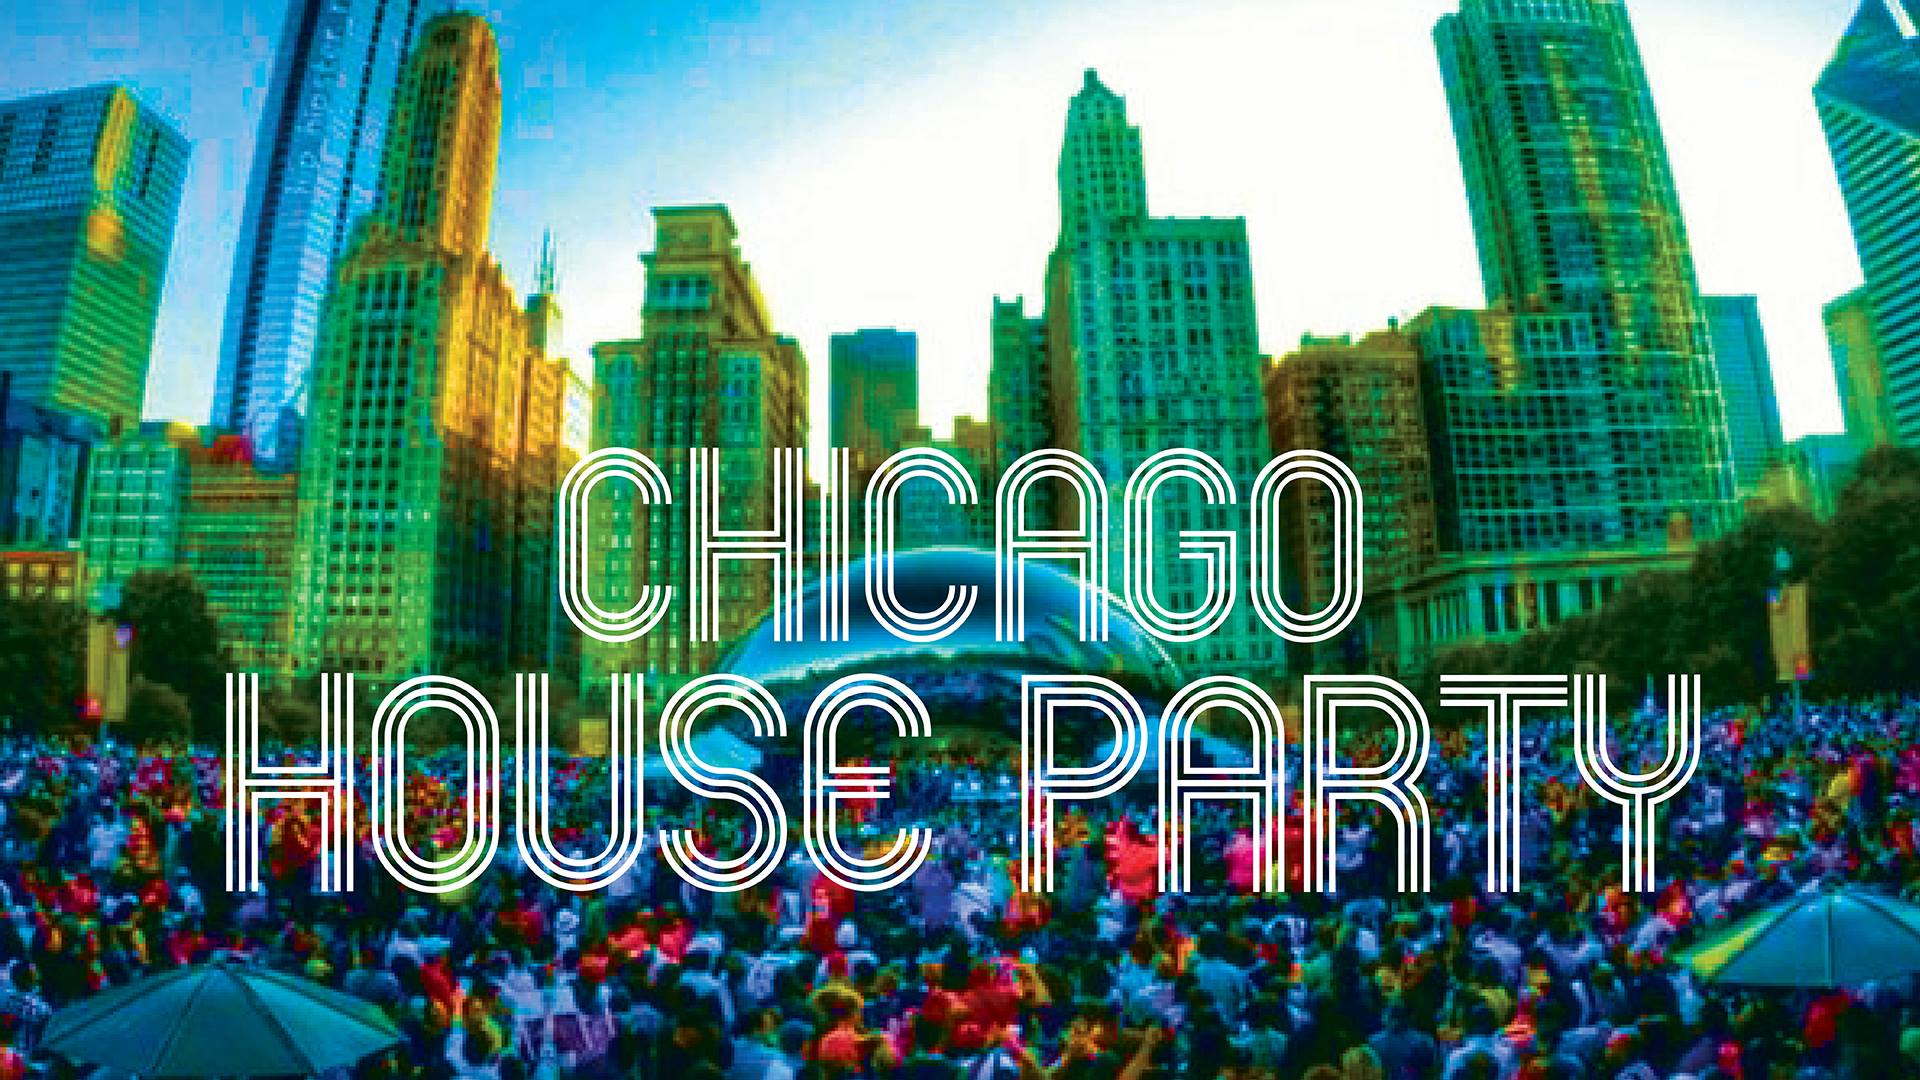 Chicago house party free millennium park event to for Classic house party songs